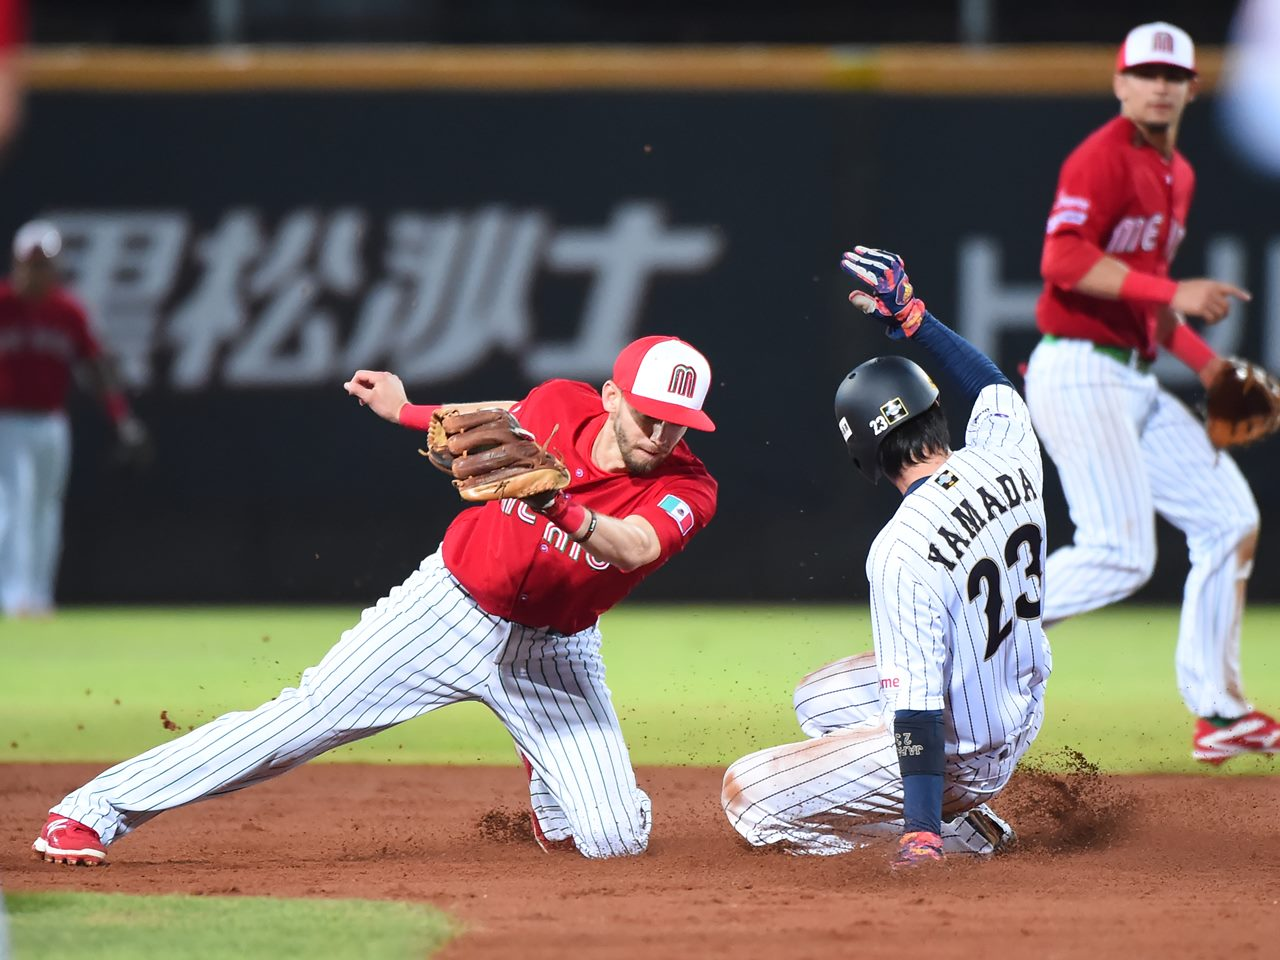 WBSC unveils updated Baseball World Rankings from No. 1 to 70